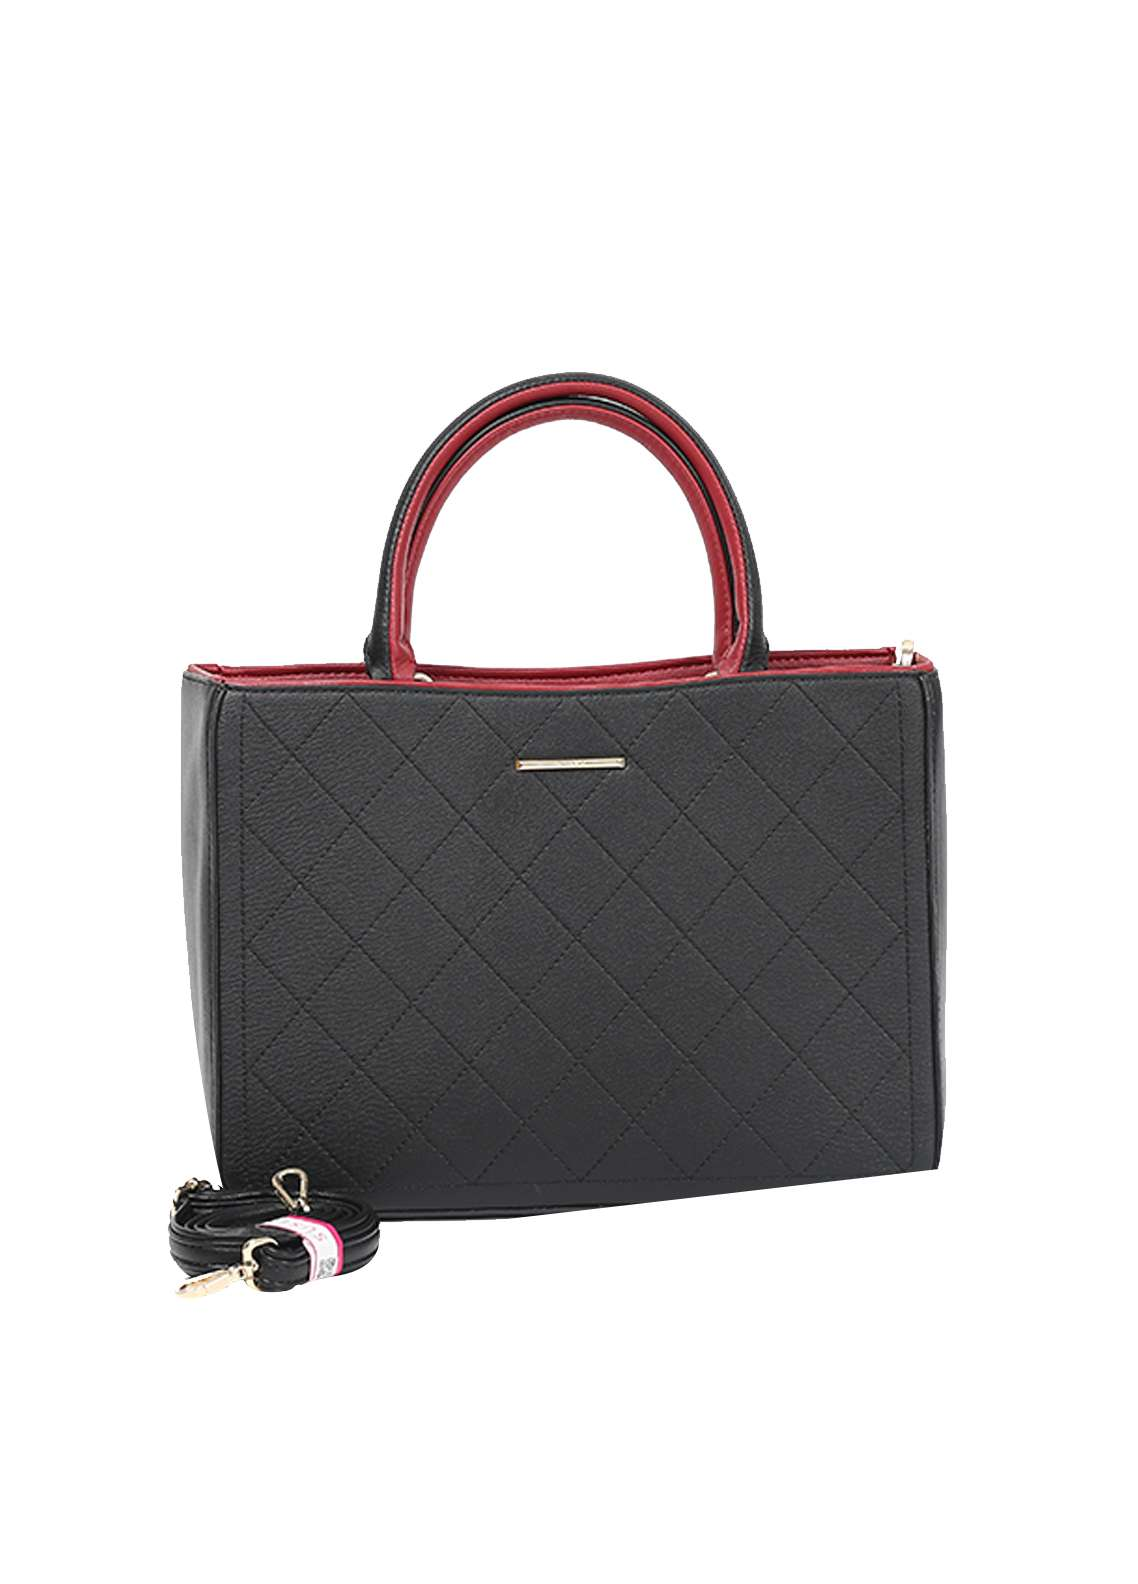 Susen PU Leather Satchels Bag for Women - Black with